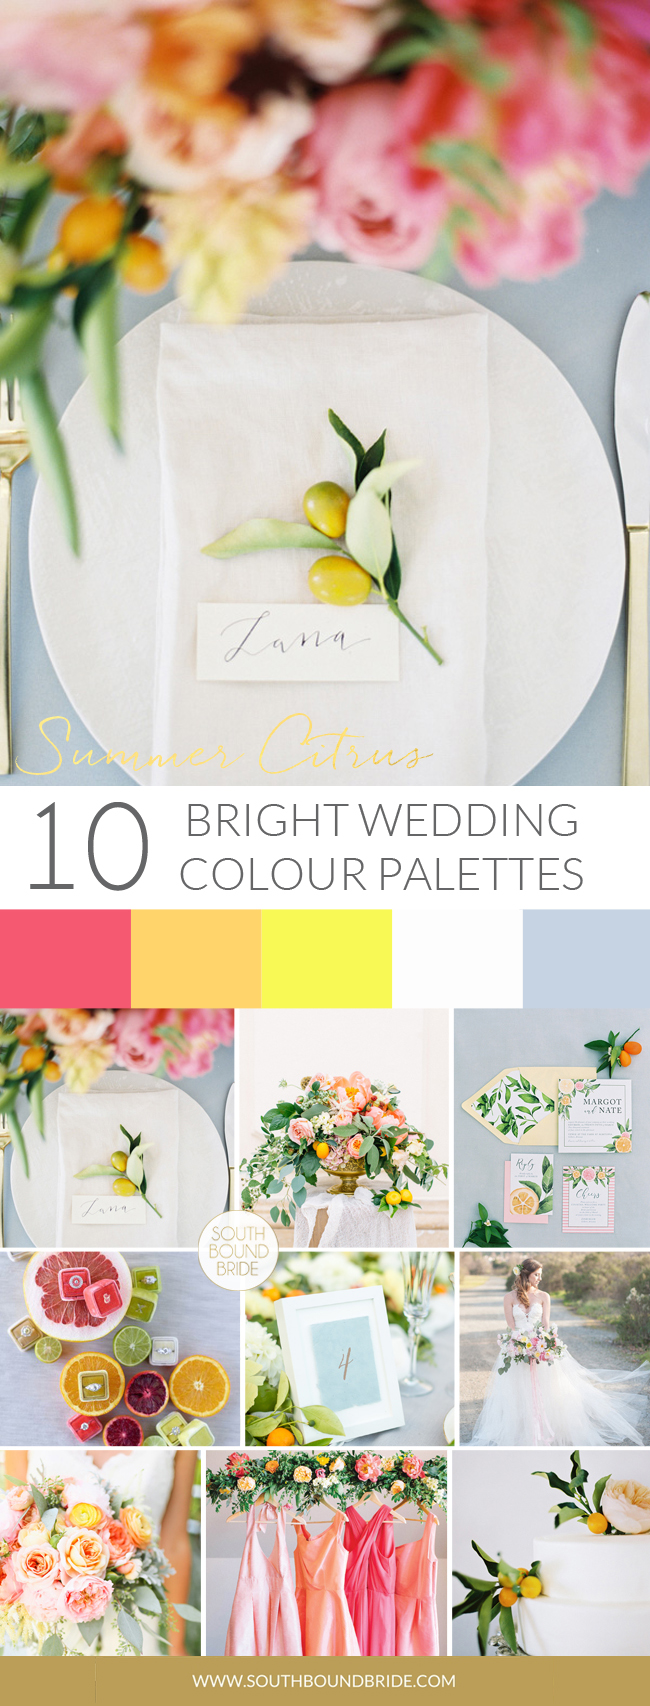 Summer Citrus Colorful Wedding Palette | SouthBound Bride